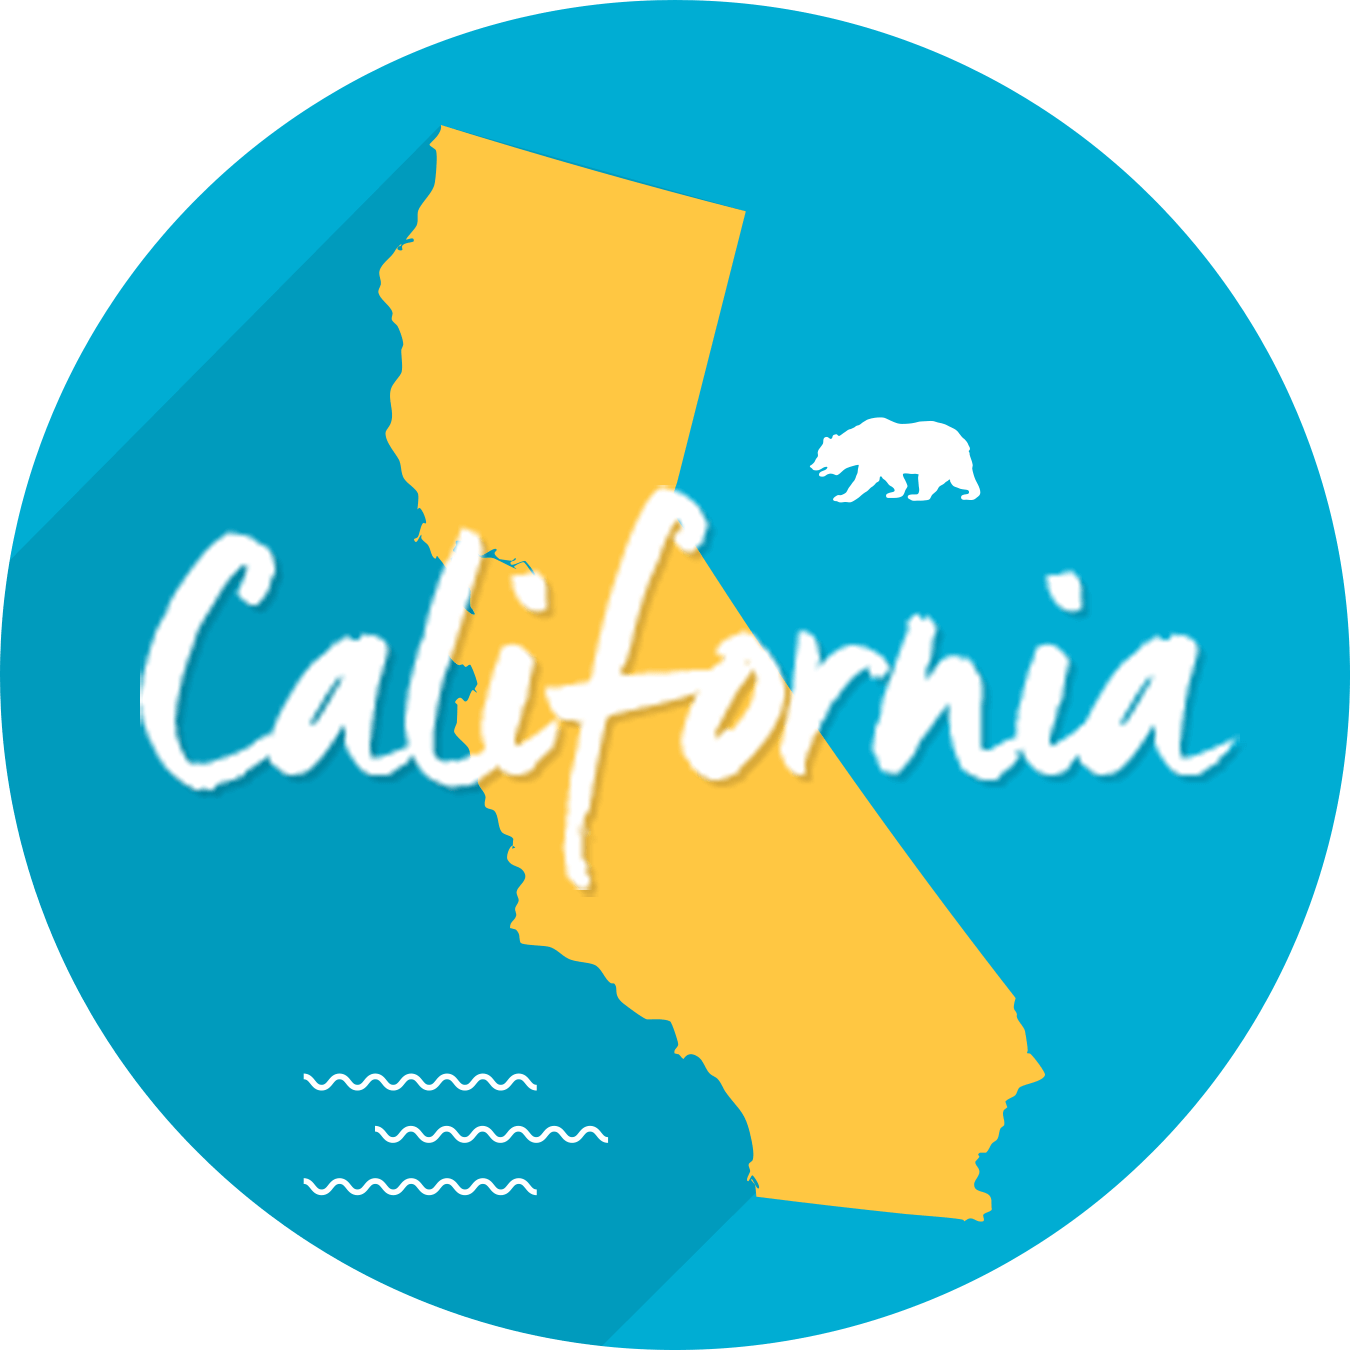 Missions clipart calif. California self storage west